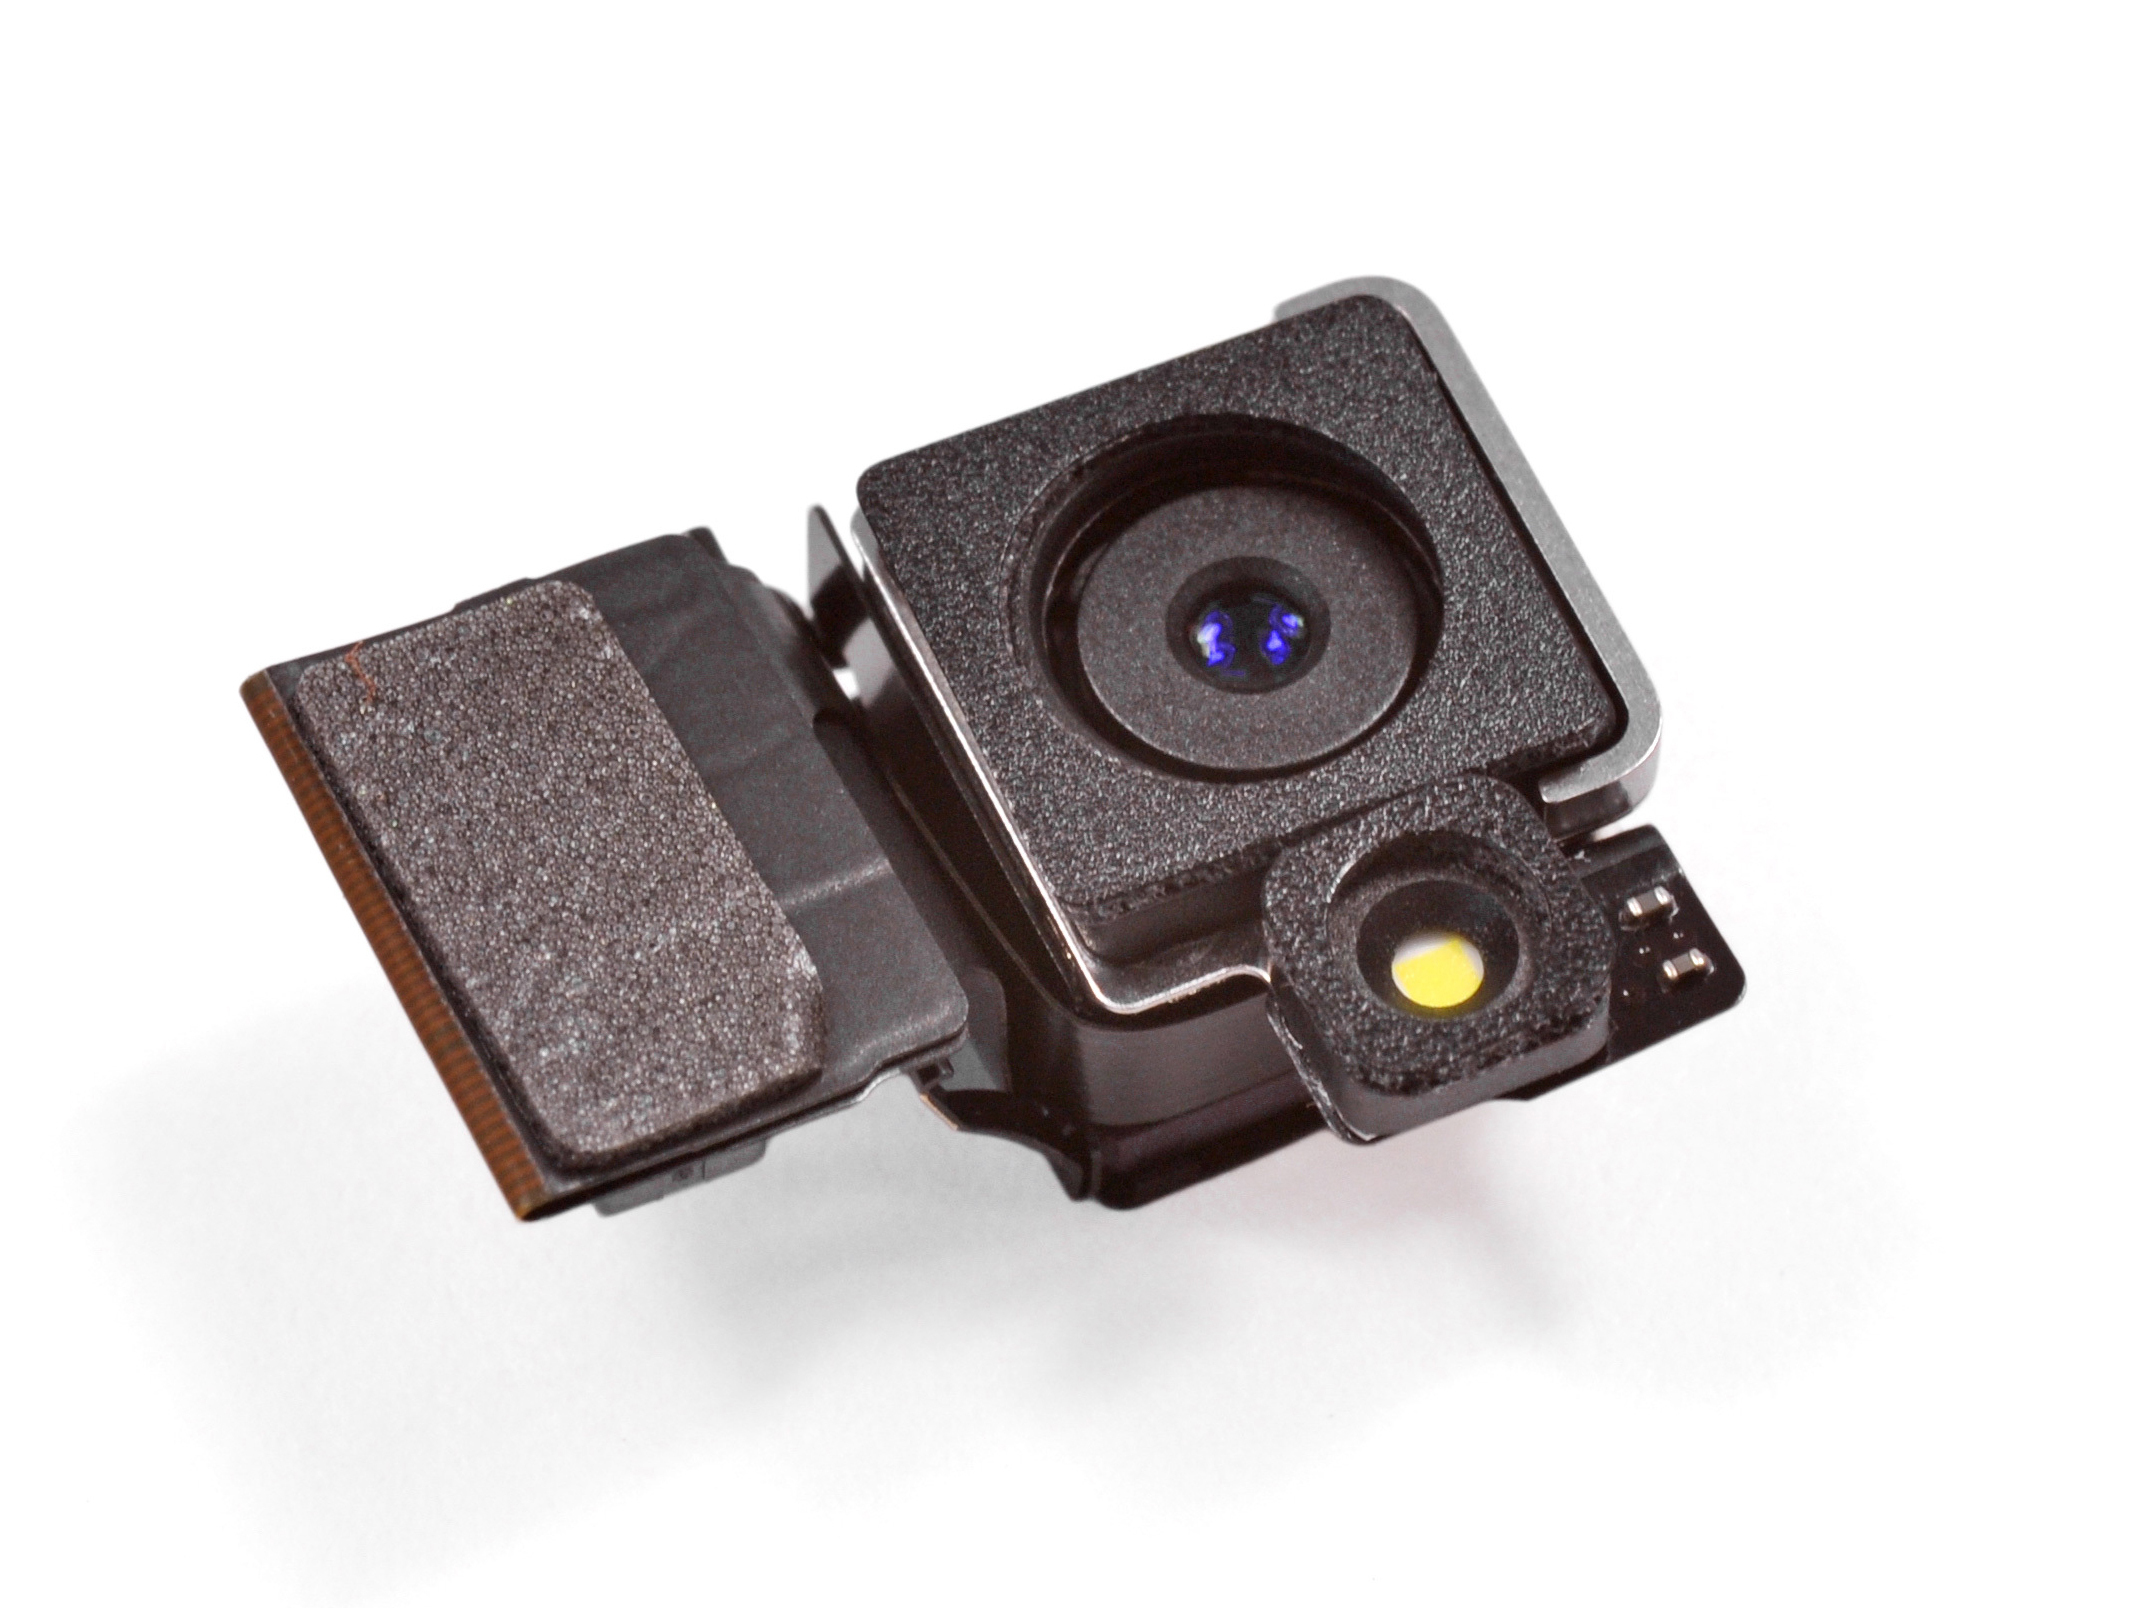 iPhone 4S Camera Made by Sony - iFixit